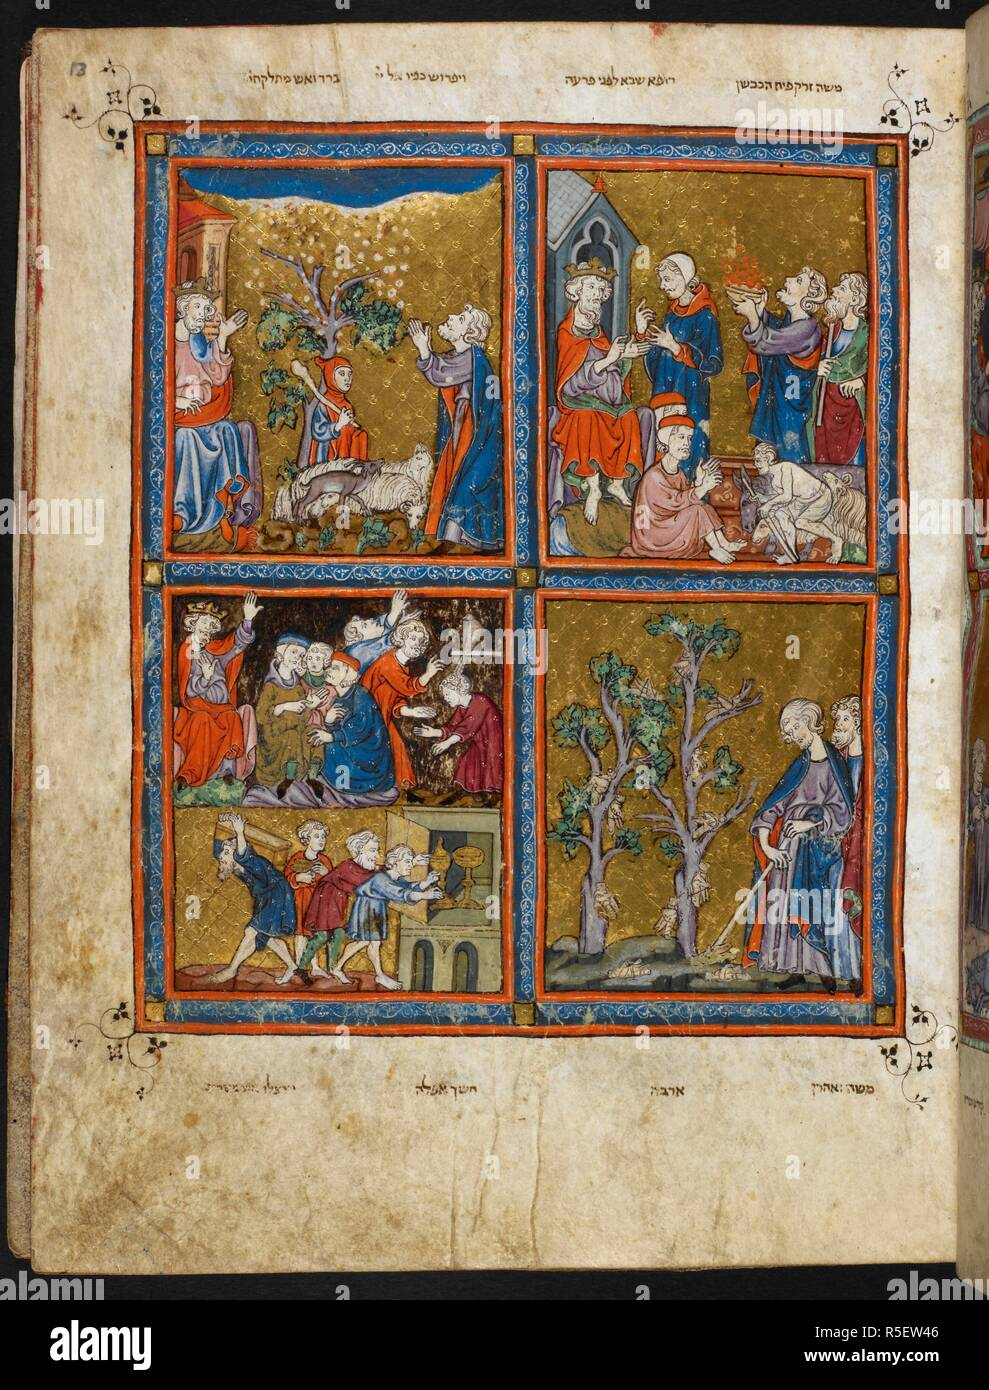 Full-page miniature, upper right: the sixth plague: boils, upper left: the seventh plague: hail, Moses begging God to stop the plague of hail (Ex. 9:33), lower right: the eighth plague: locusts, lower left: the ninth plague: darkness, the Israelites despoiling the Egyptians (Ex. 12:35-36). . Haggadah for Passover (the 'Golden Haggadah''). Spain, N. E., Catalonia (Barcelona?); 2nd quarter of the 14th century. Vellum manuscript. Source: Add. 27210 f.13. Language: Hebrew. - Stock Image